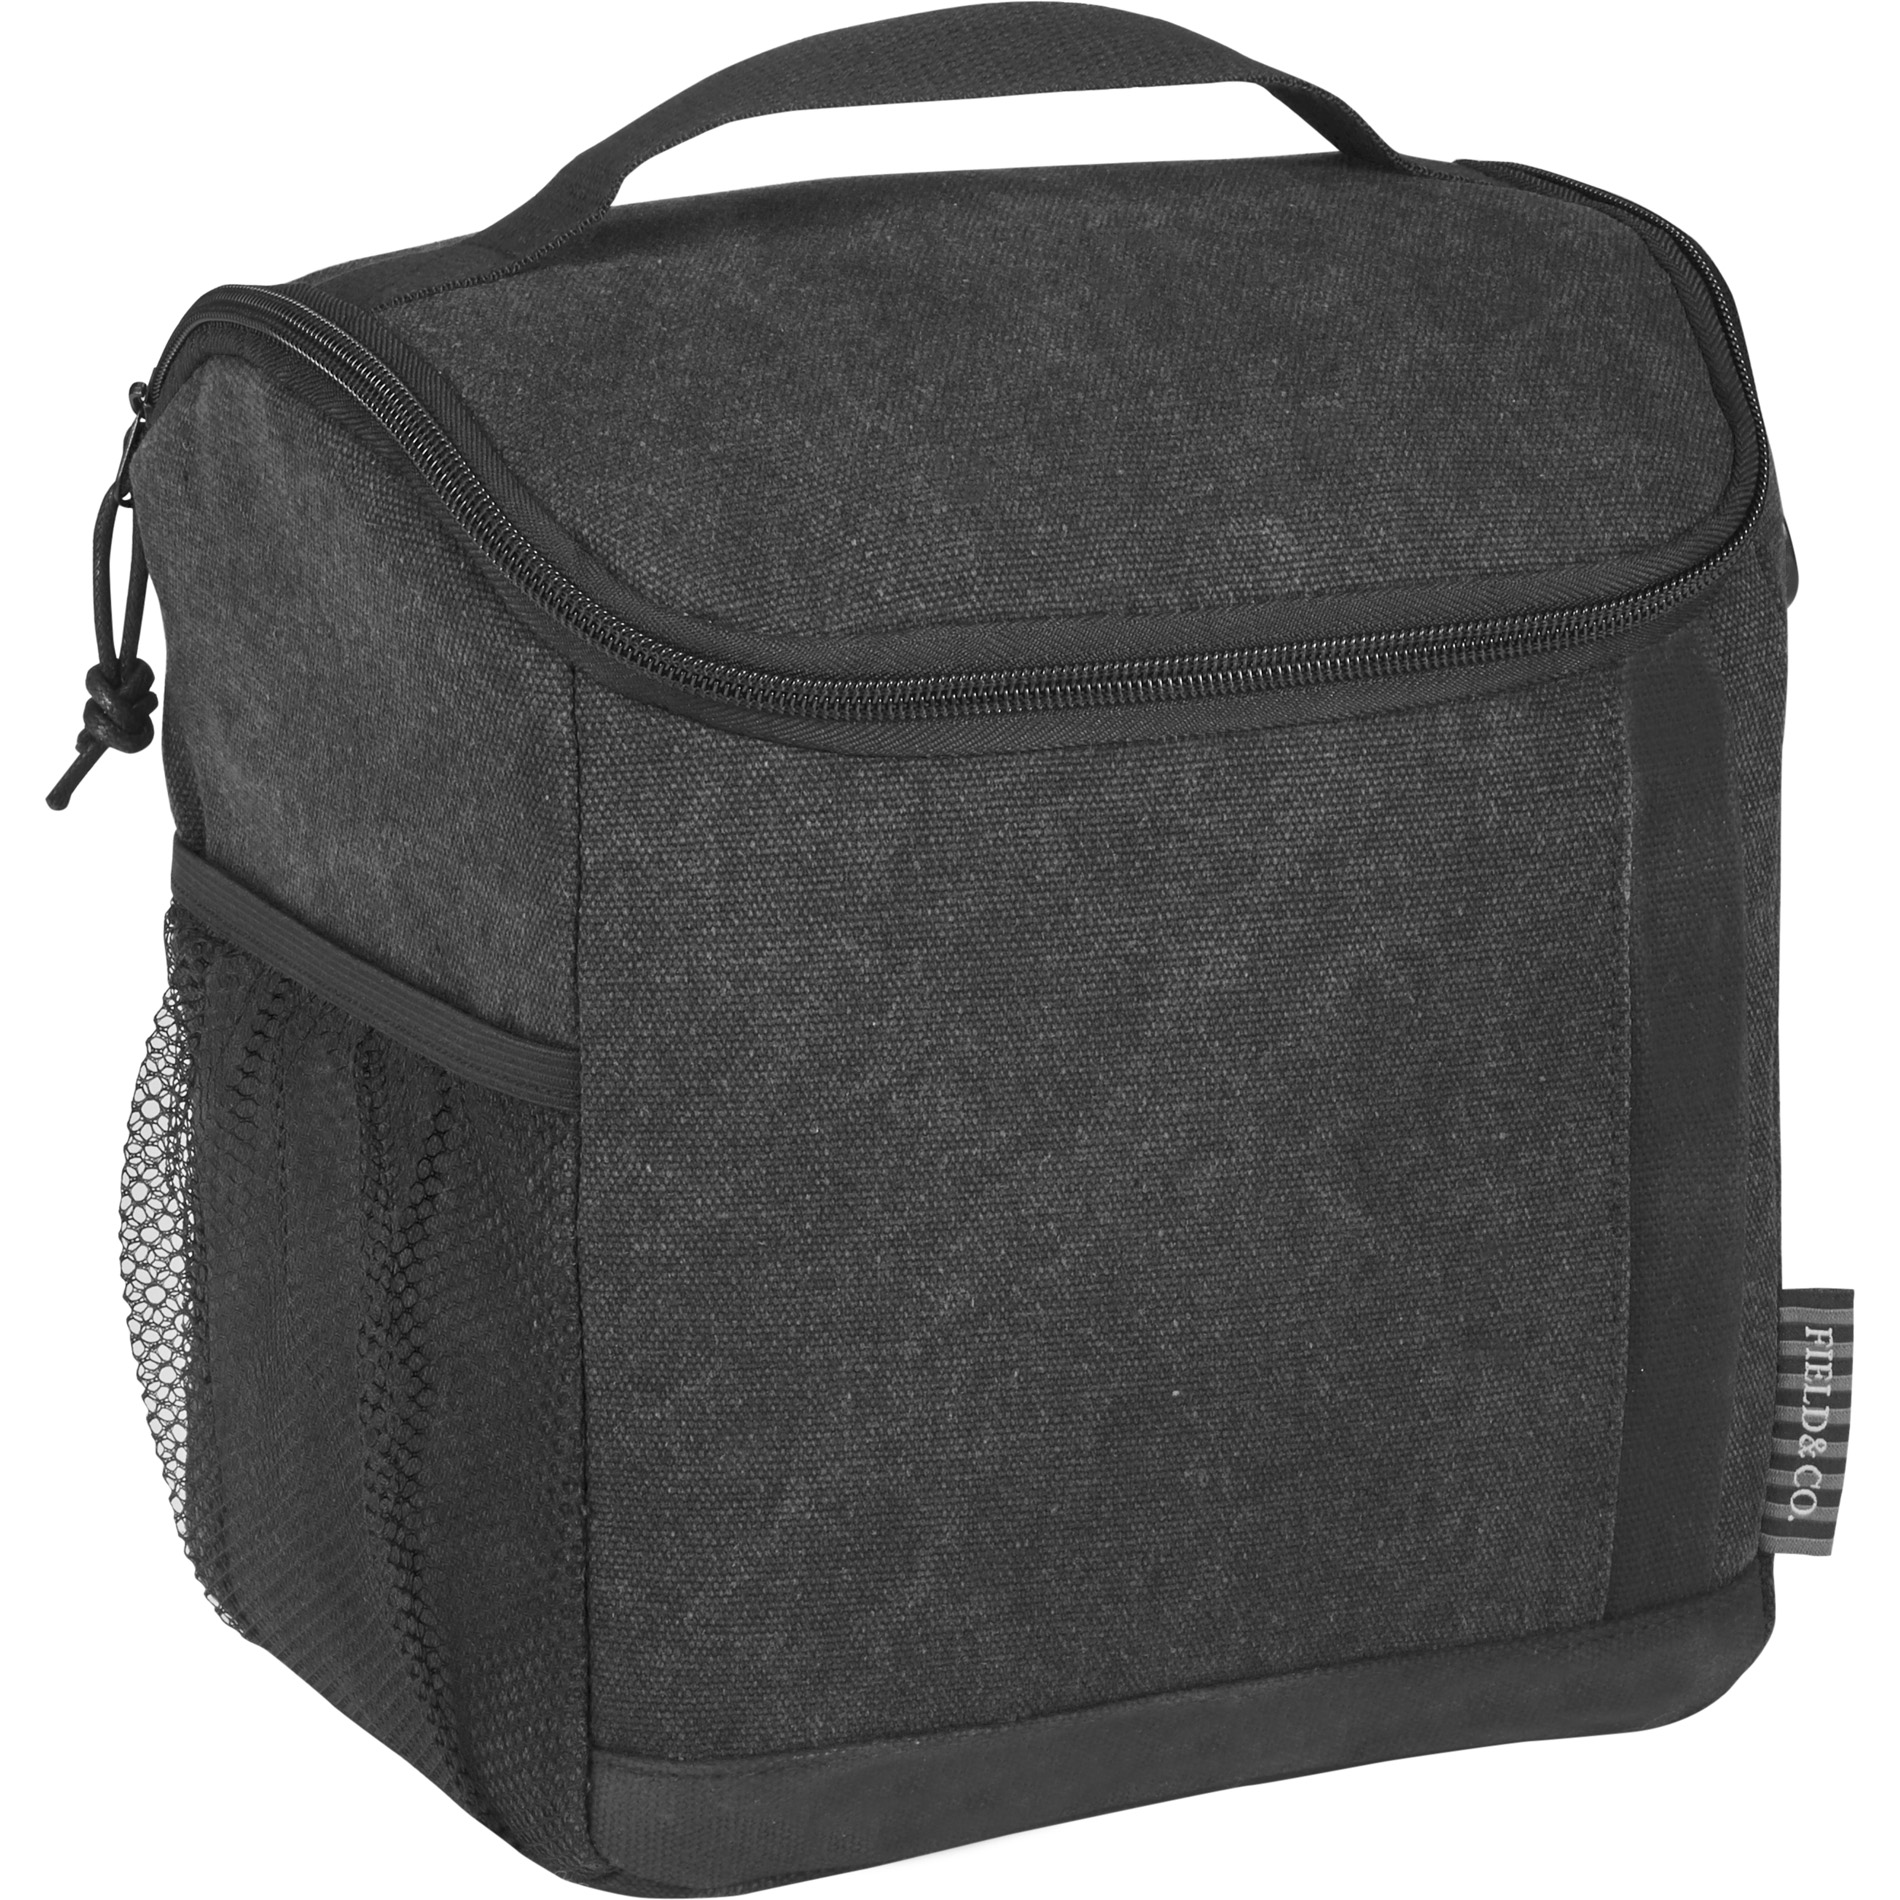 Field & Co. 7590-04 - Woodland 6 Can Lunch Cooler